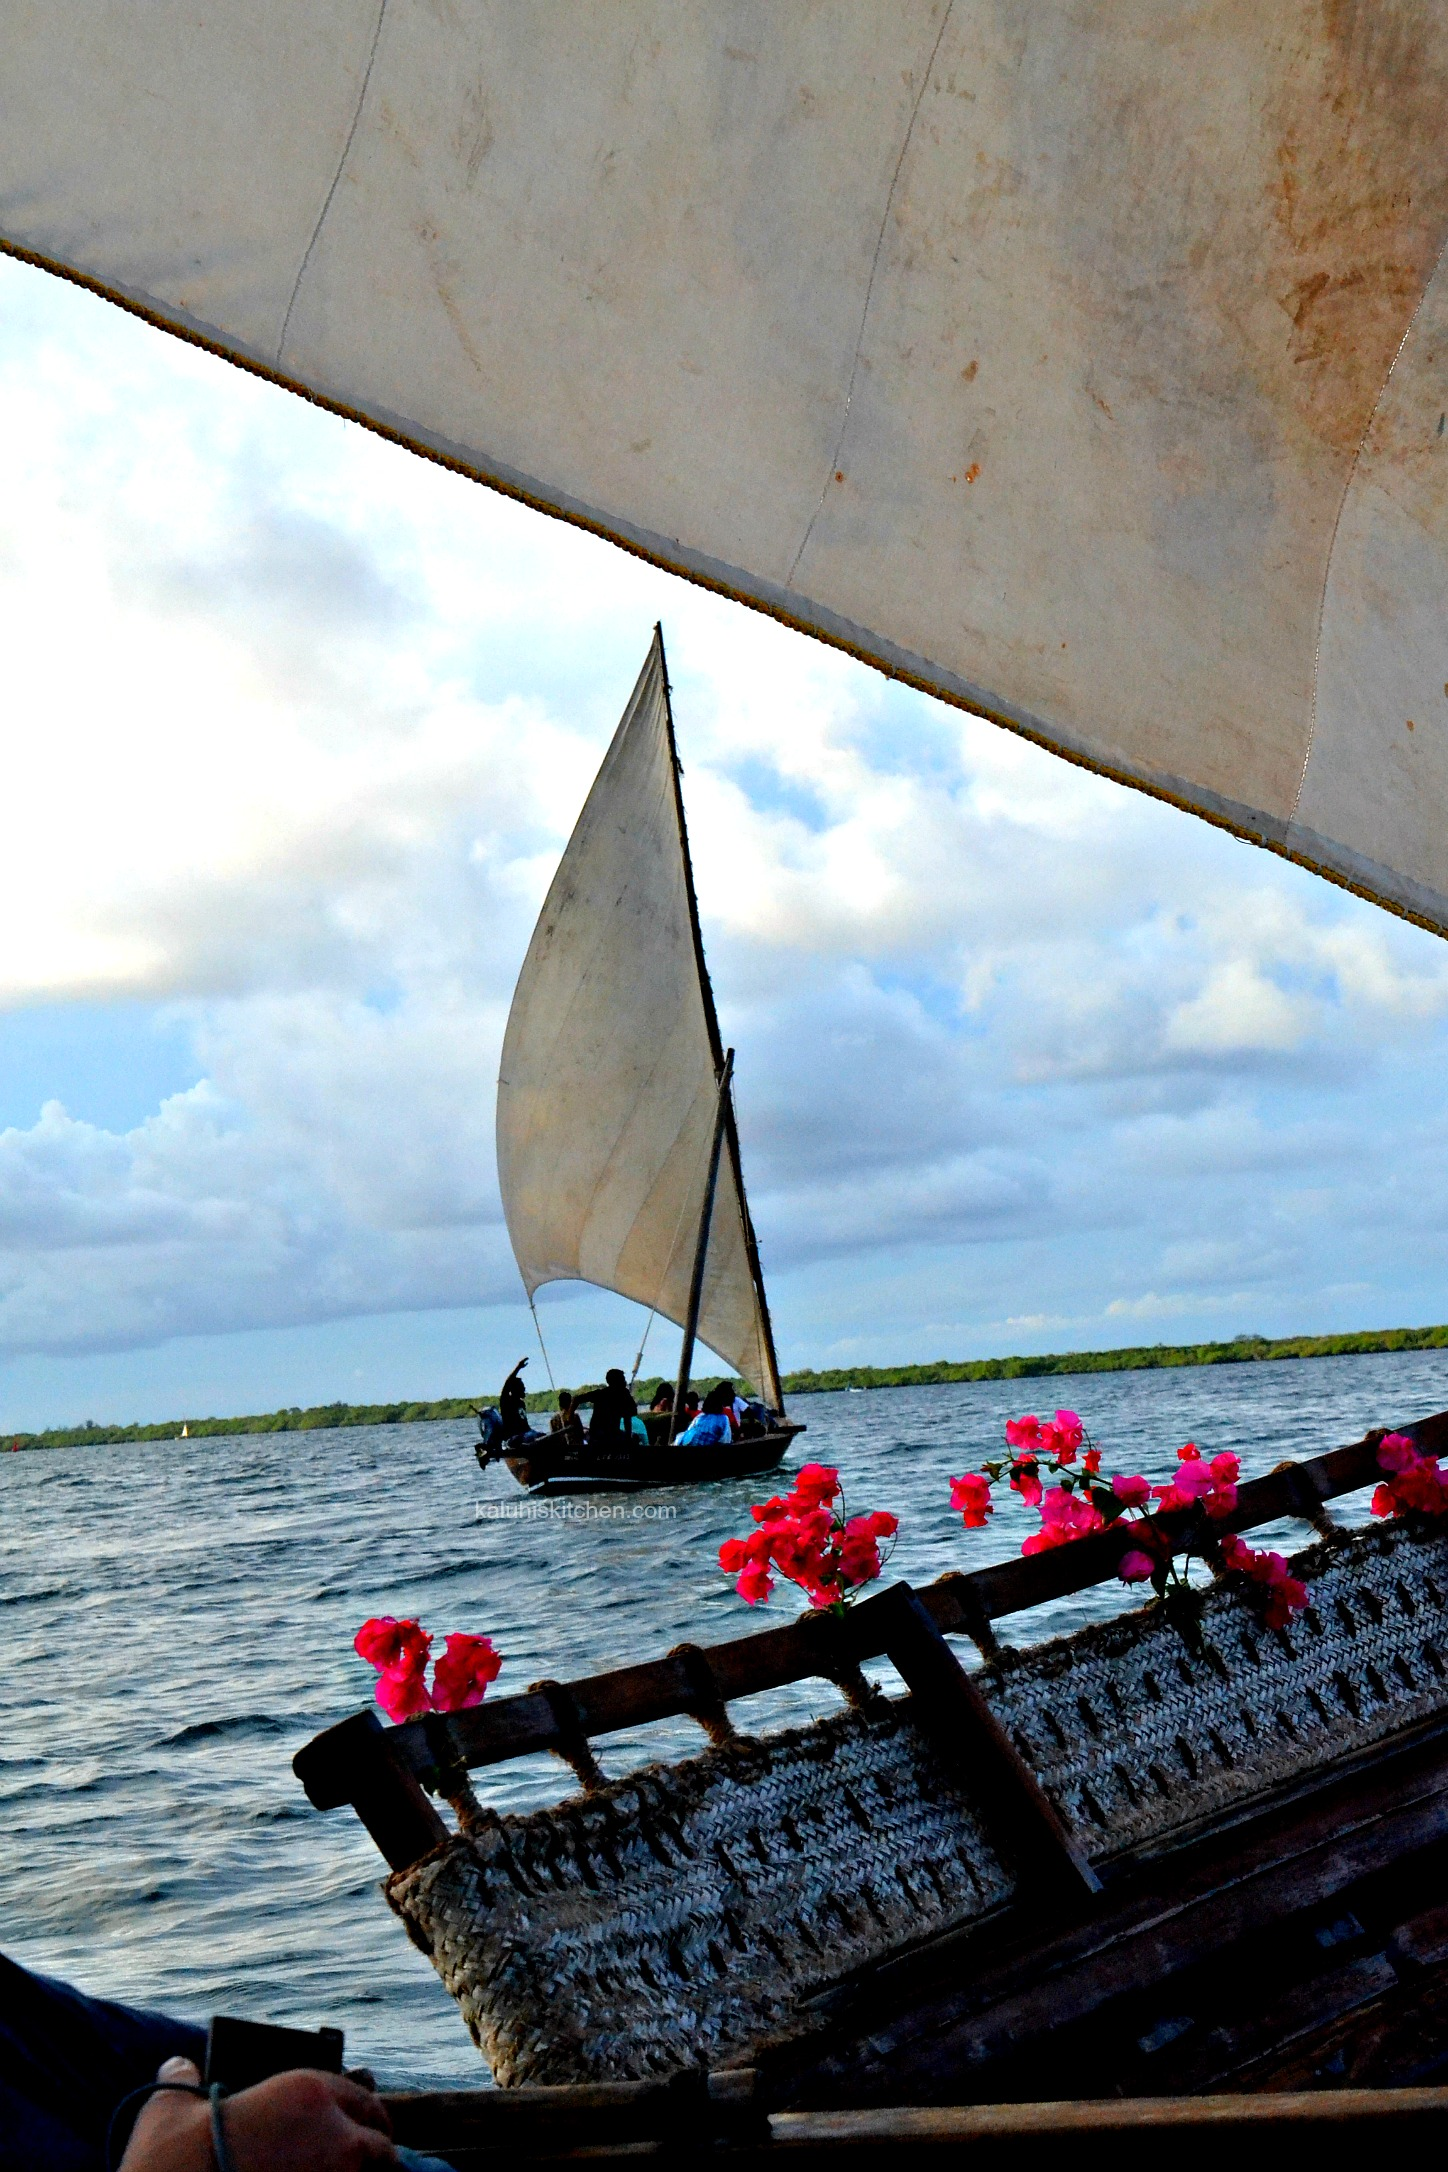 Lamu dhow cruise during the annual Lamu food festival which showcased the various tourist packages for both locals and international tourists